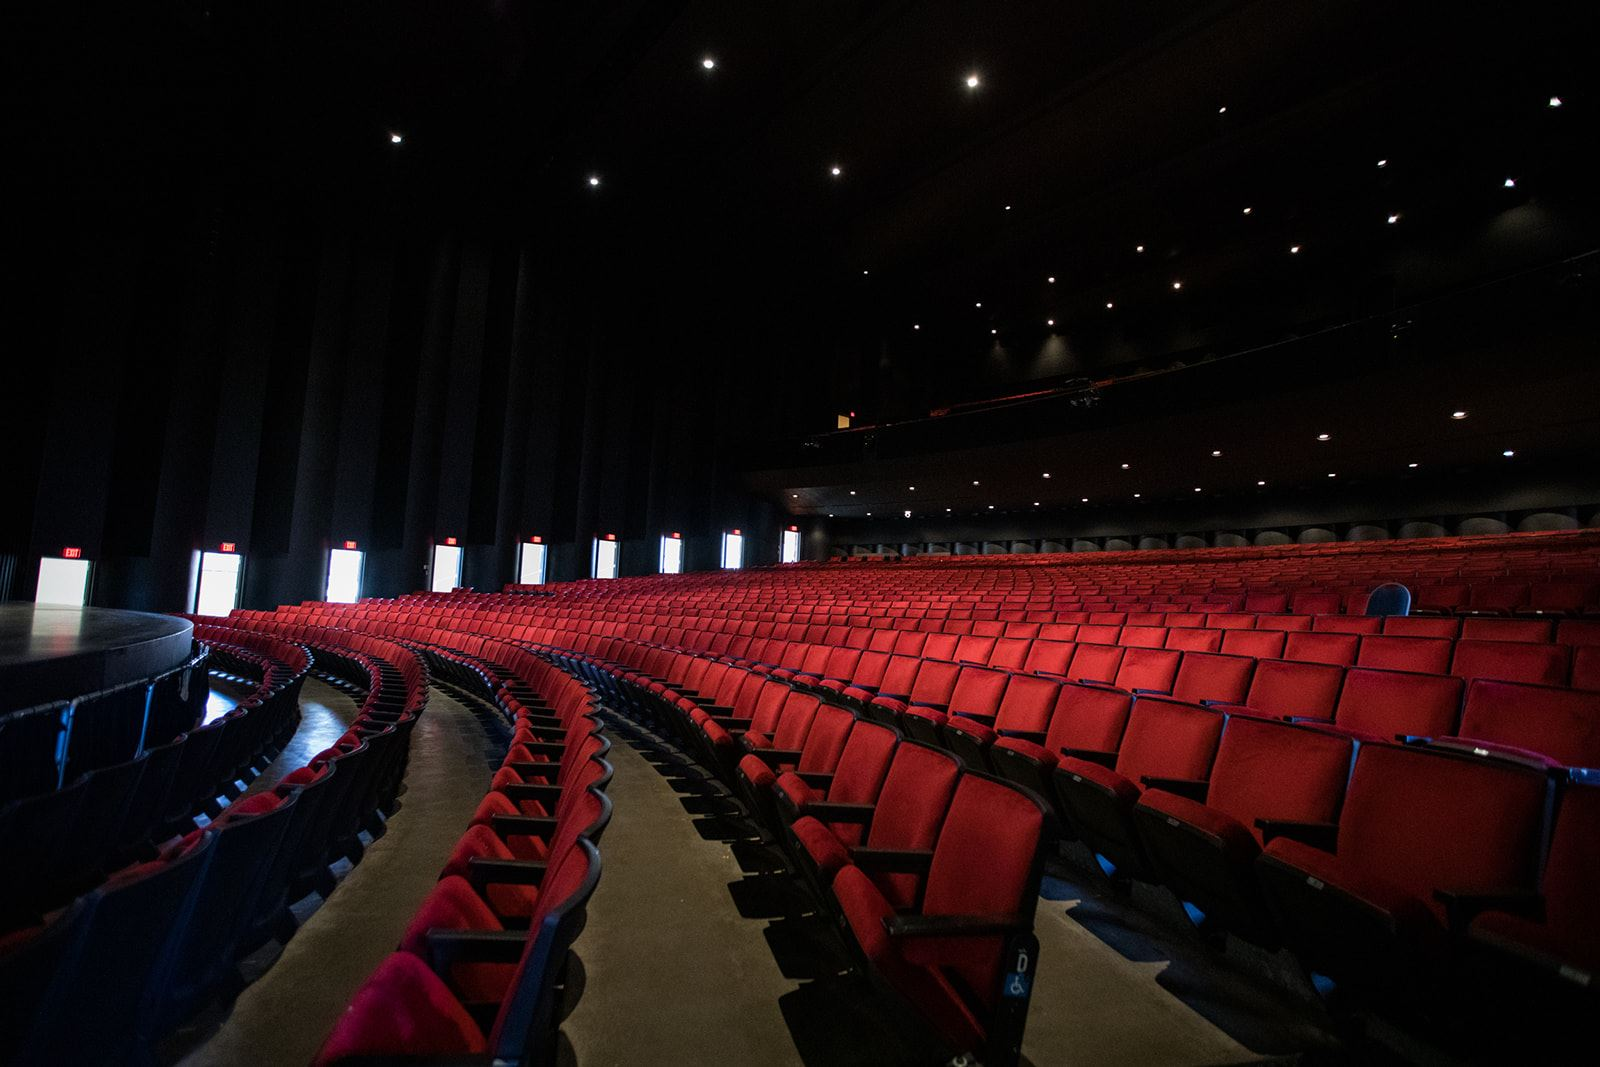 Auditorium Seating 3